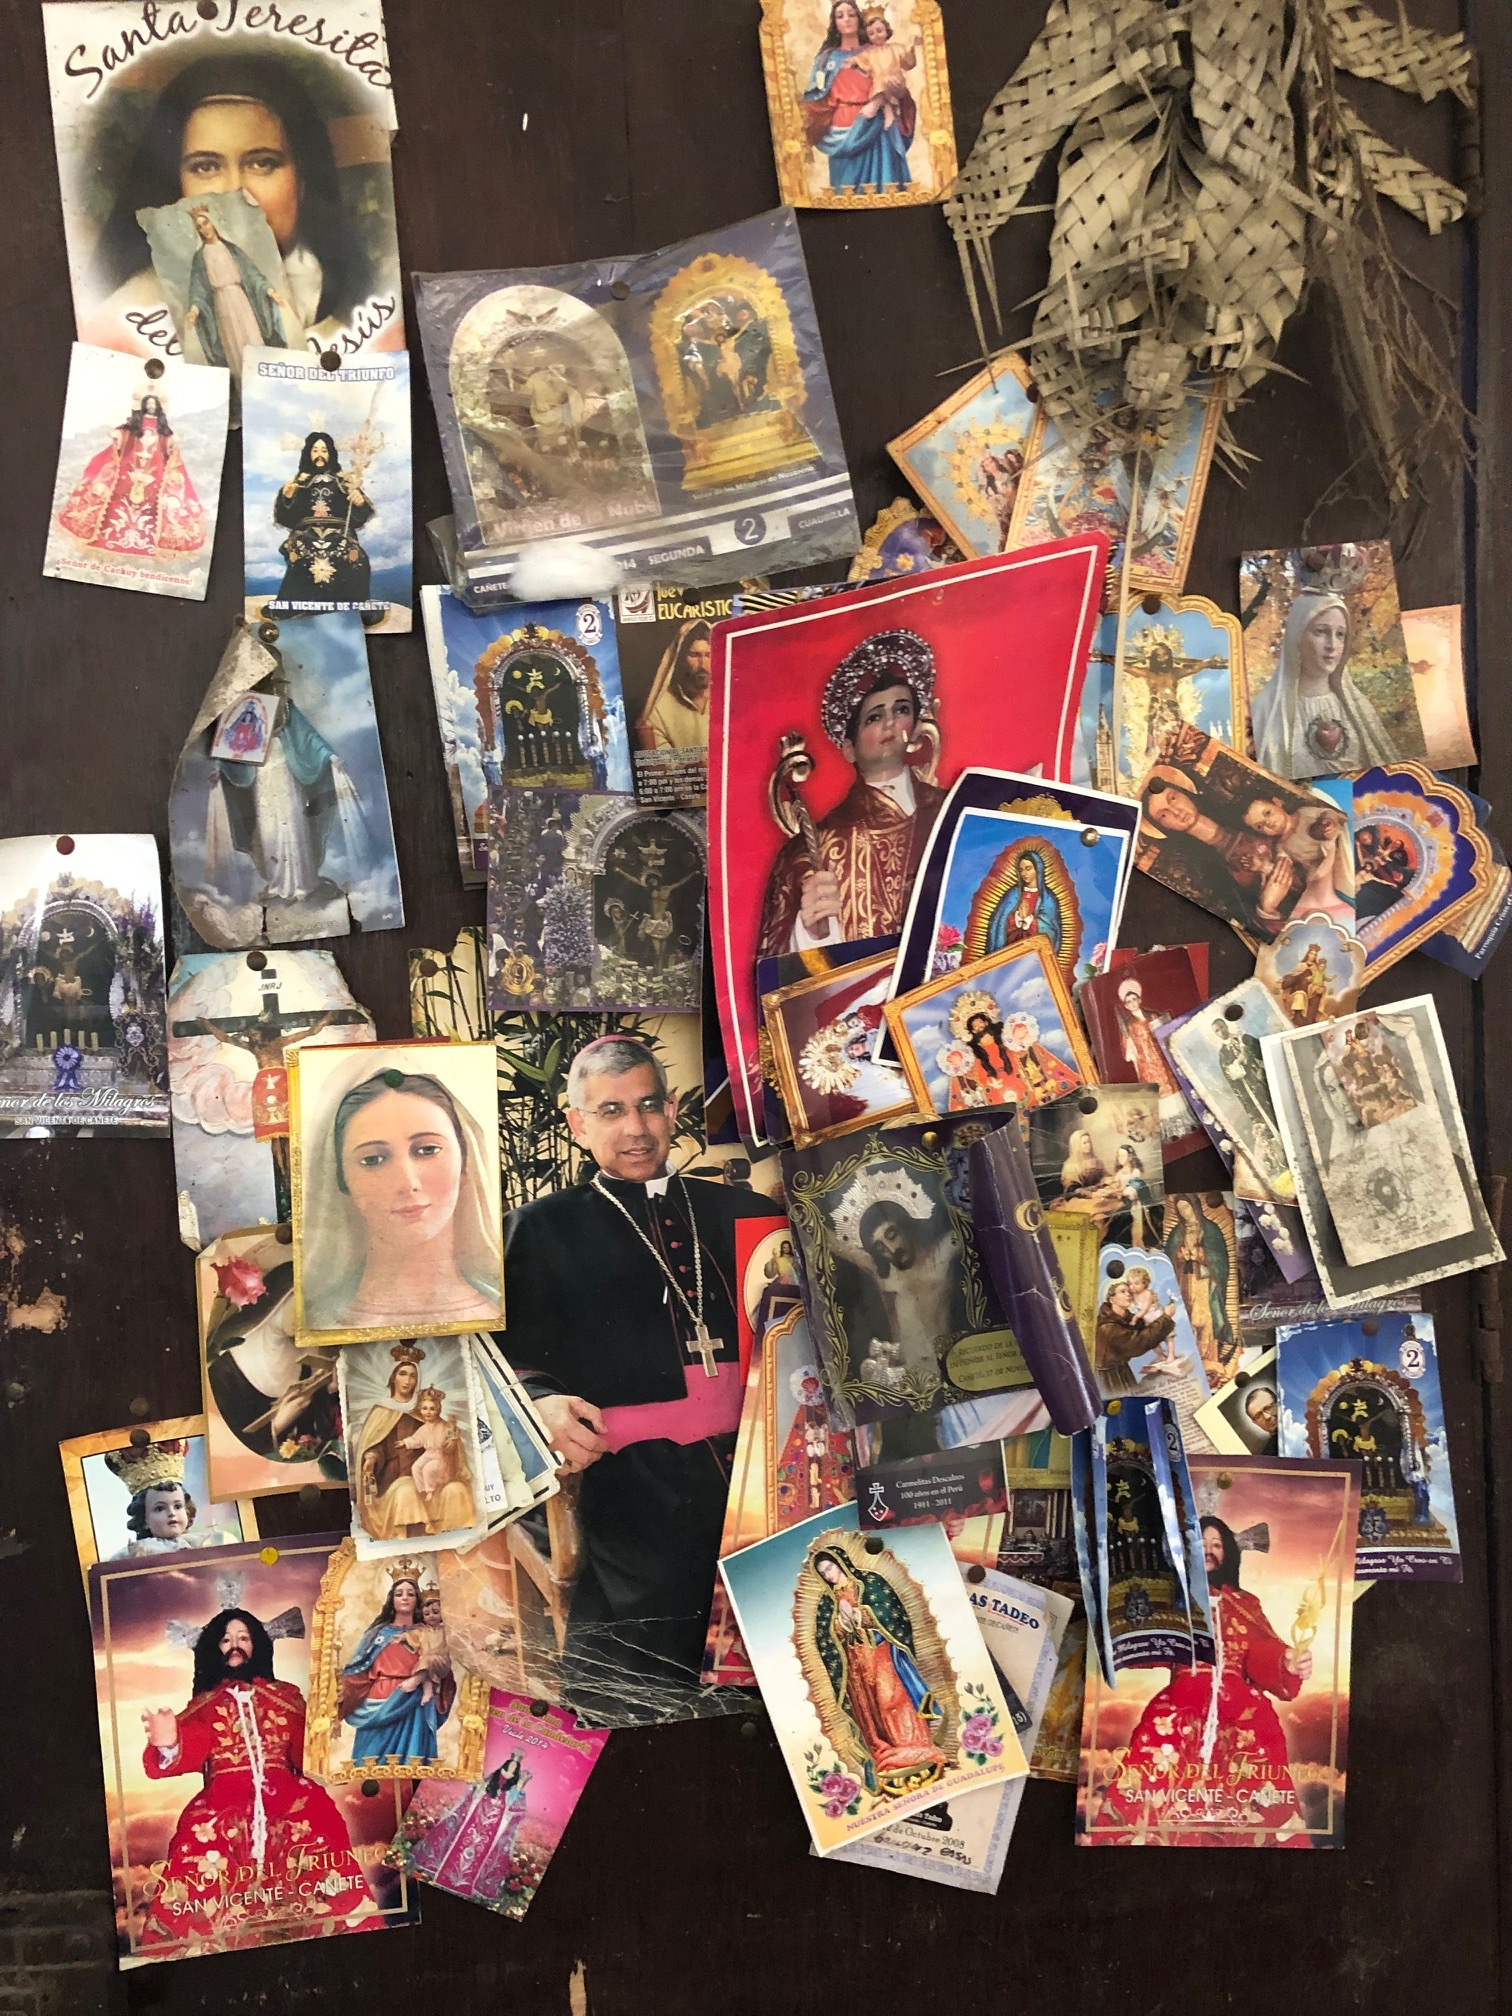 A door of a family home filled with religious images. Families are very religious and expect more help from their Church